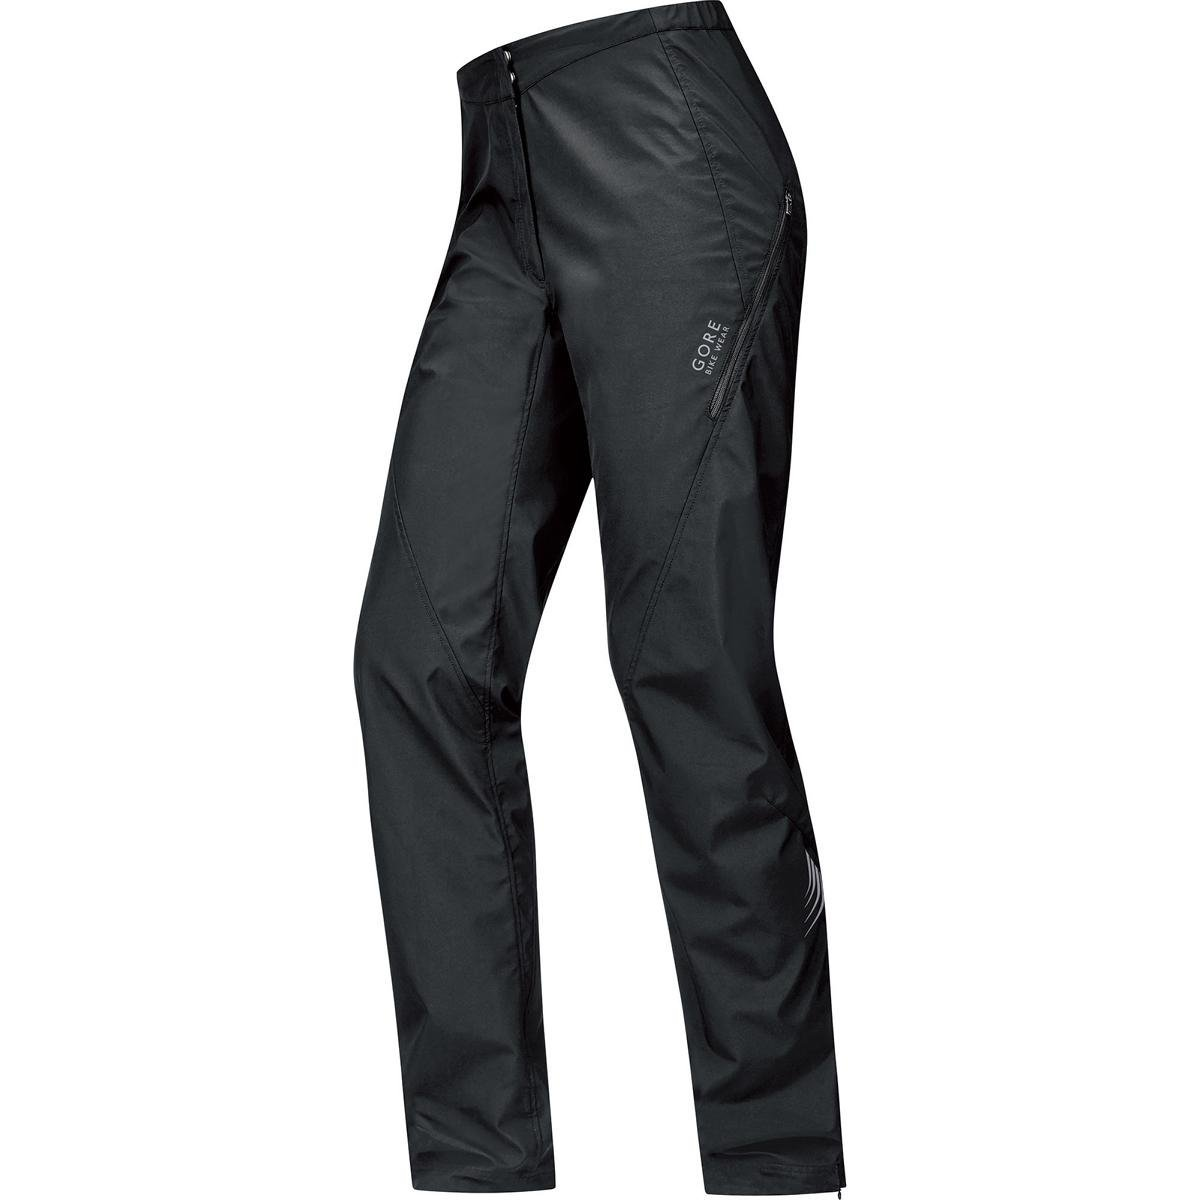 GORE WEAR Damen Hose und Shorts Lange Element Windstopper Active Shell Pants